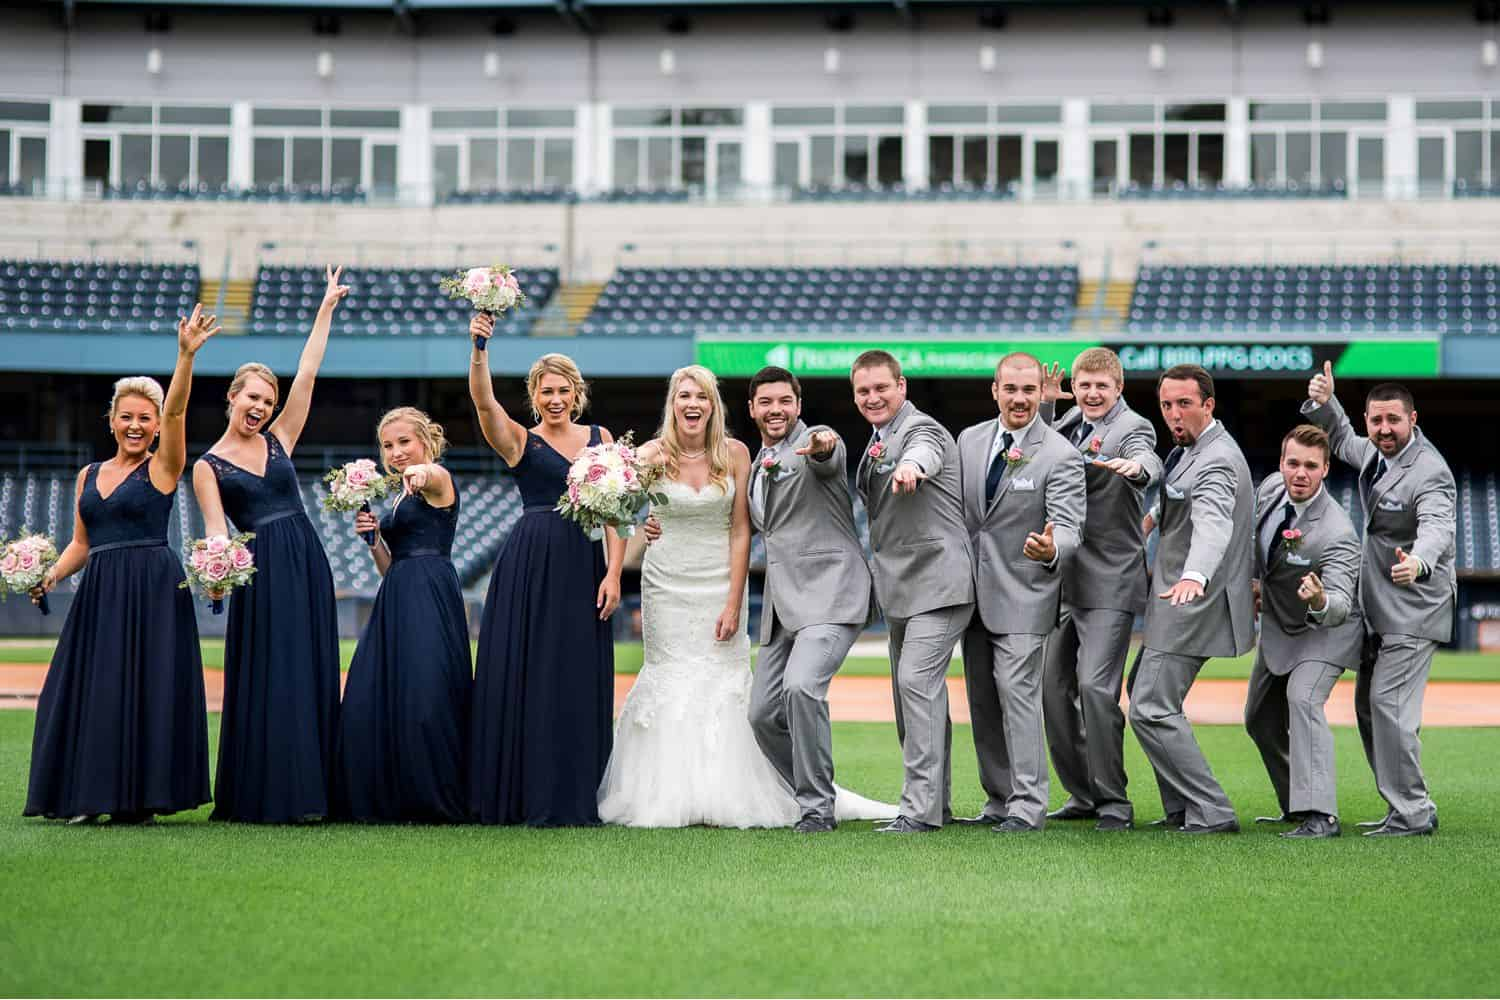 A wedding party strikes a pose on a baseball field.